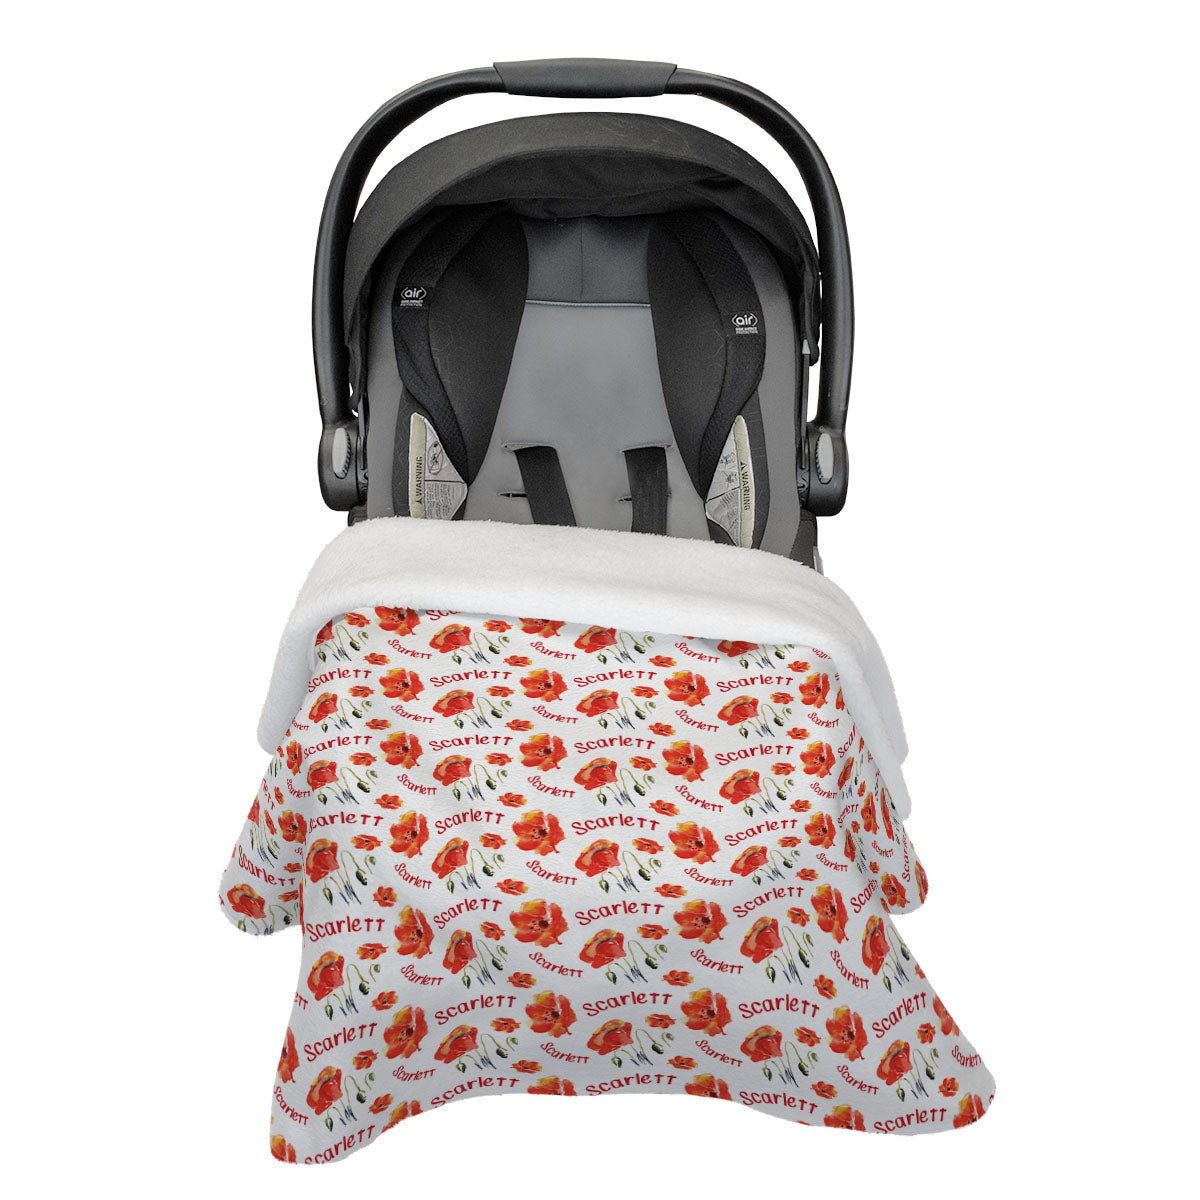 Eleanor's Poppies | Rose Garden | Car Seat Blanket